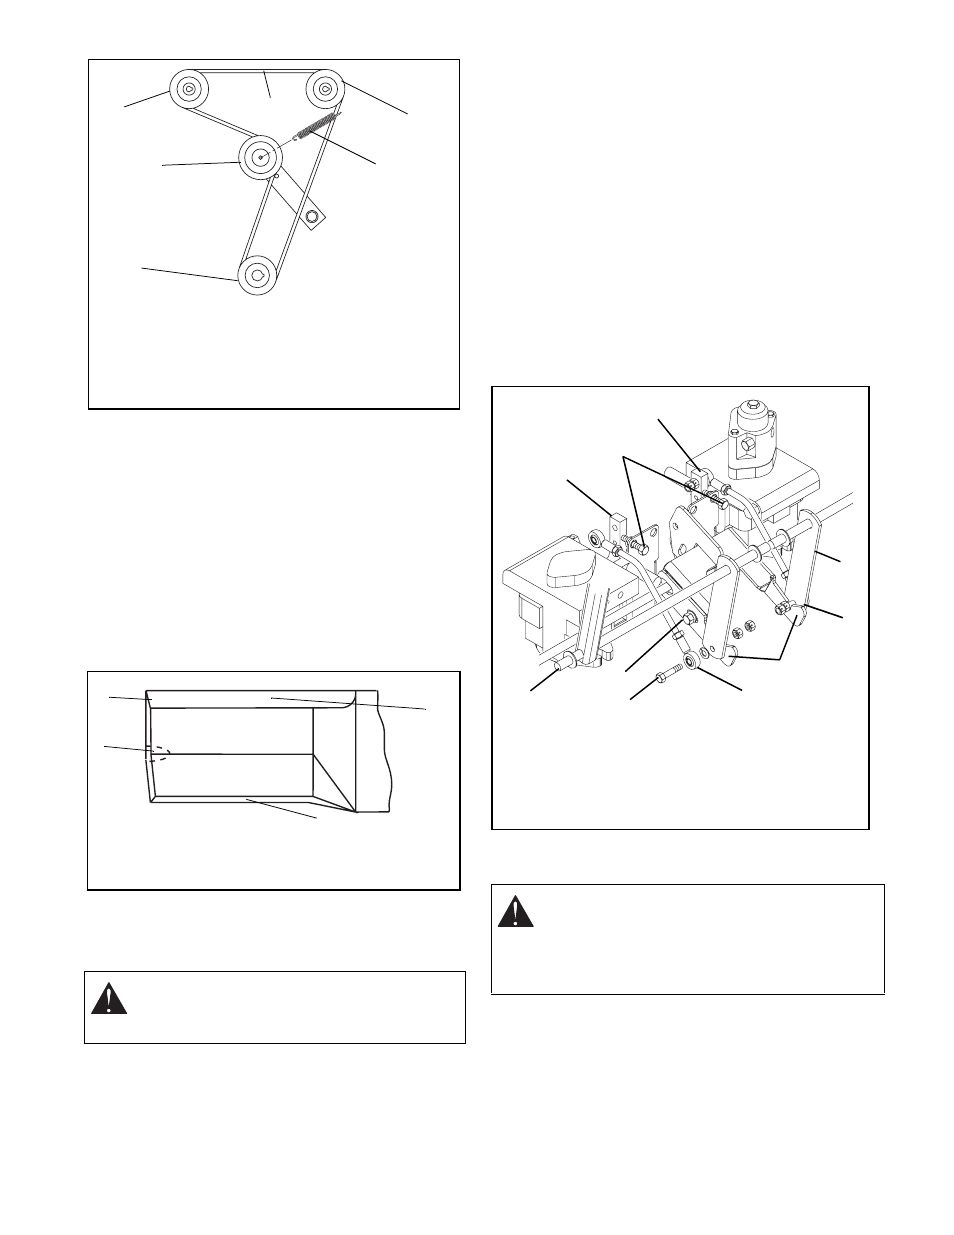 sharpening mower blade, tires, mower blades   gravely 260z user manual    page 21 / 44